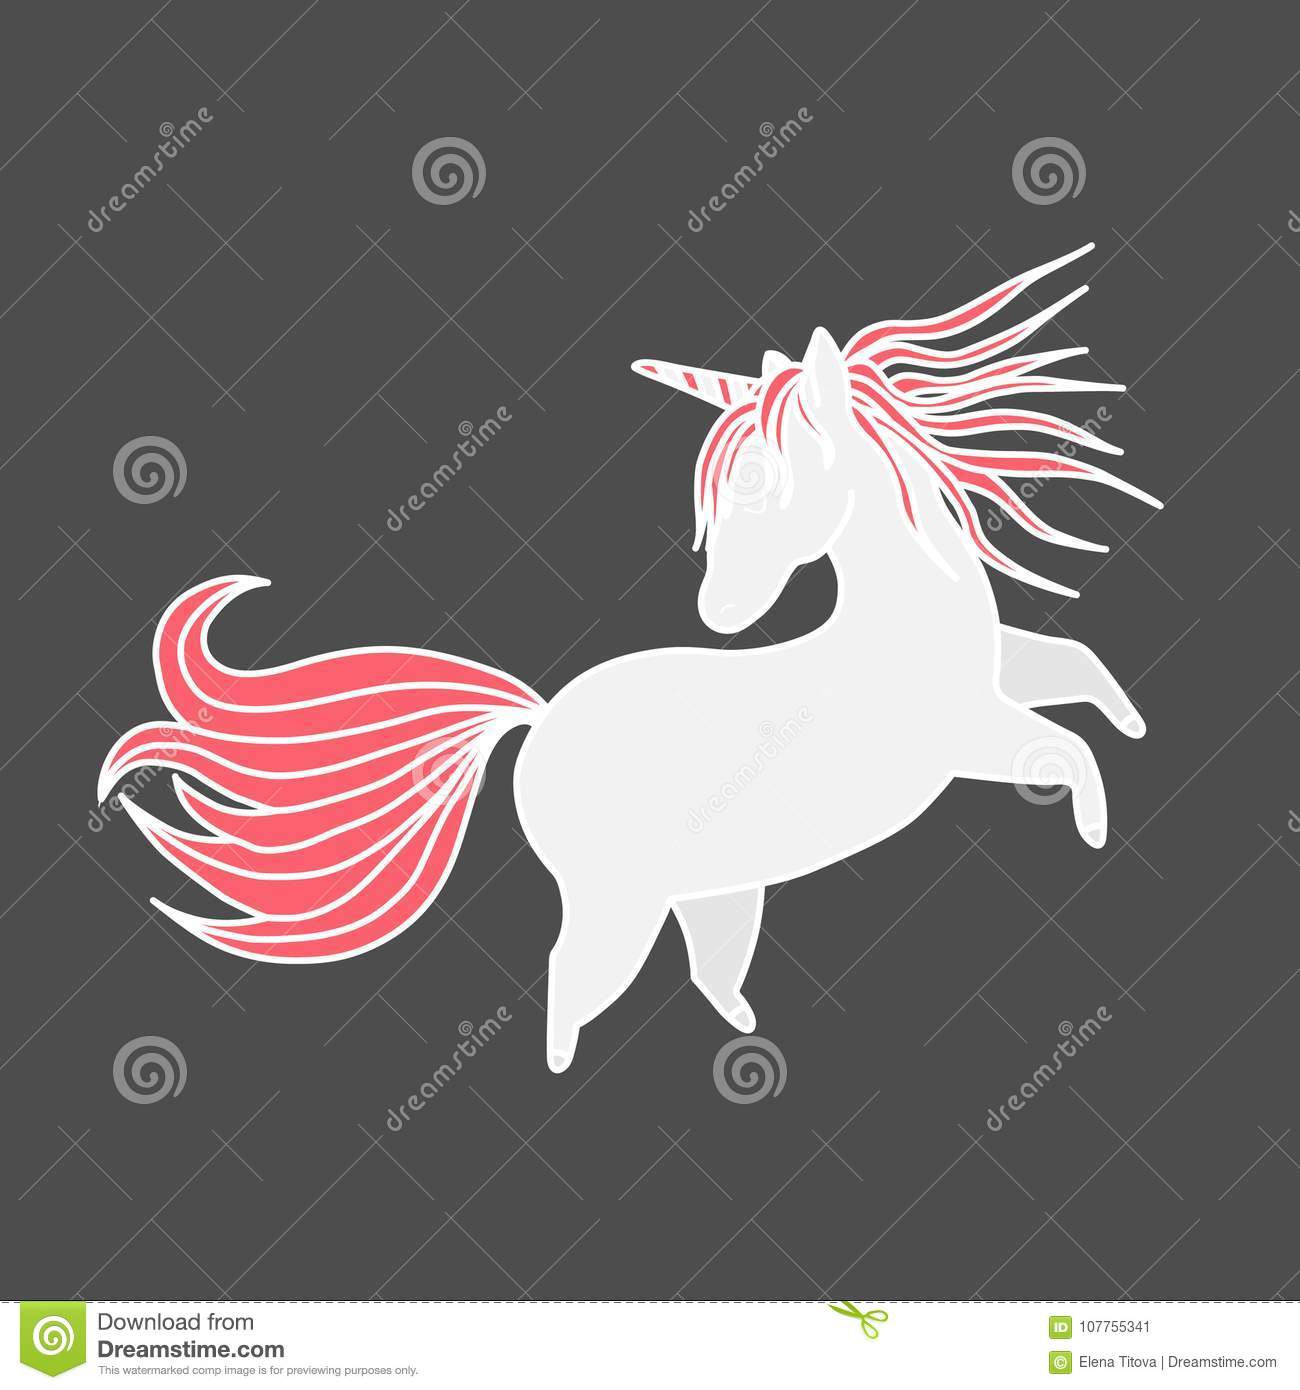 Funny Unicorn Valentine S Day Design Element Hand Drawn Element